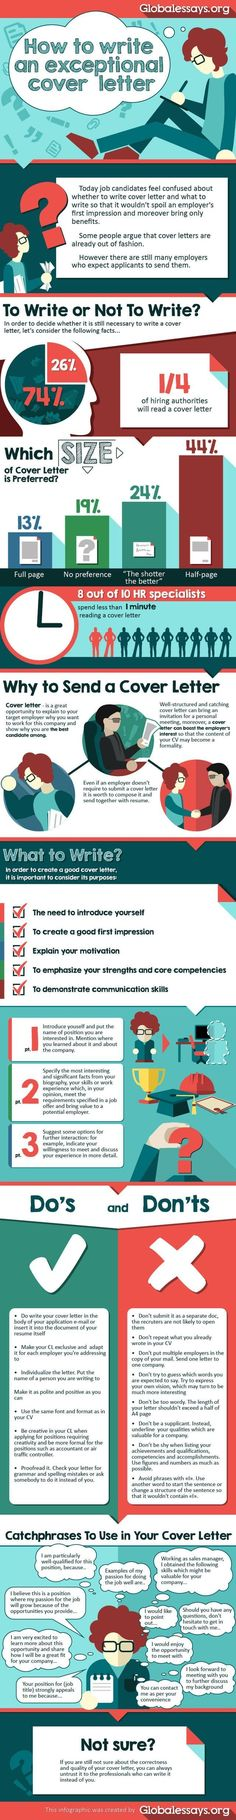 6 Secrets To Writing A Great Cover Letter Look at, On writing - great cover letter secrets